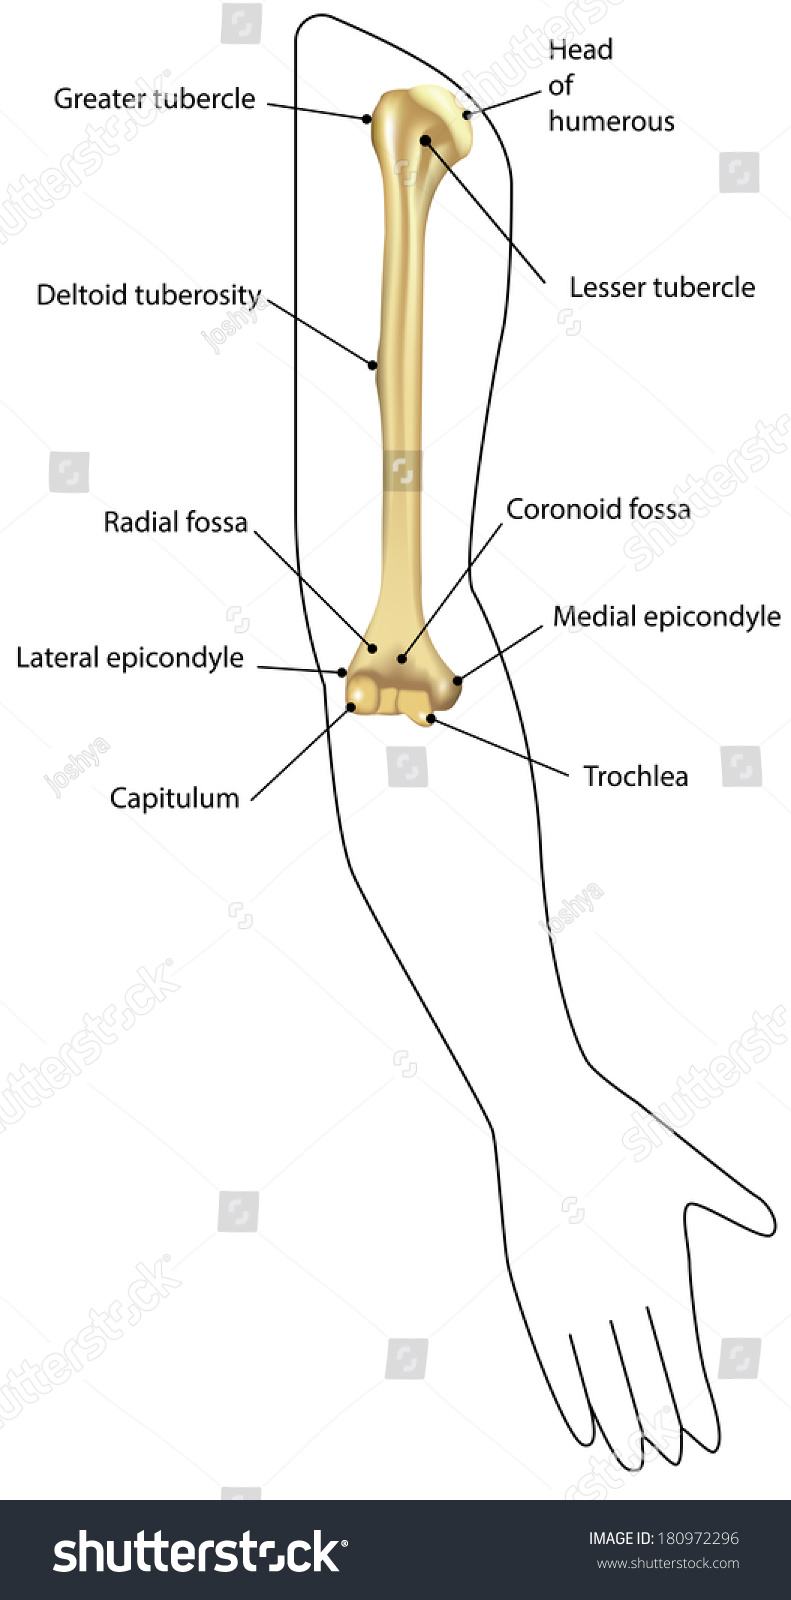 anatomy of the humerus in situ labeled diagram stock vector  : diagram of humerus - findchart.co